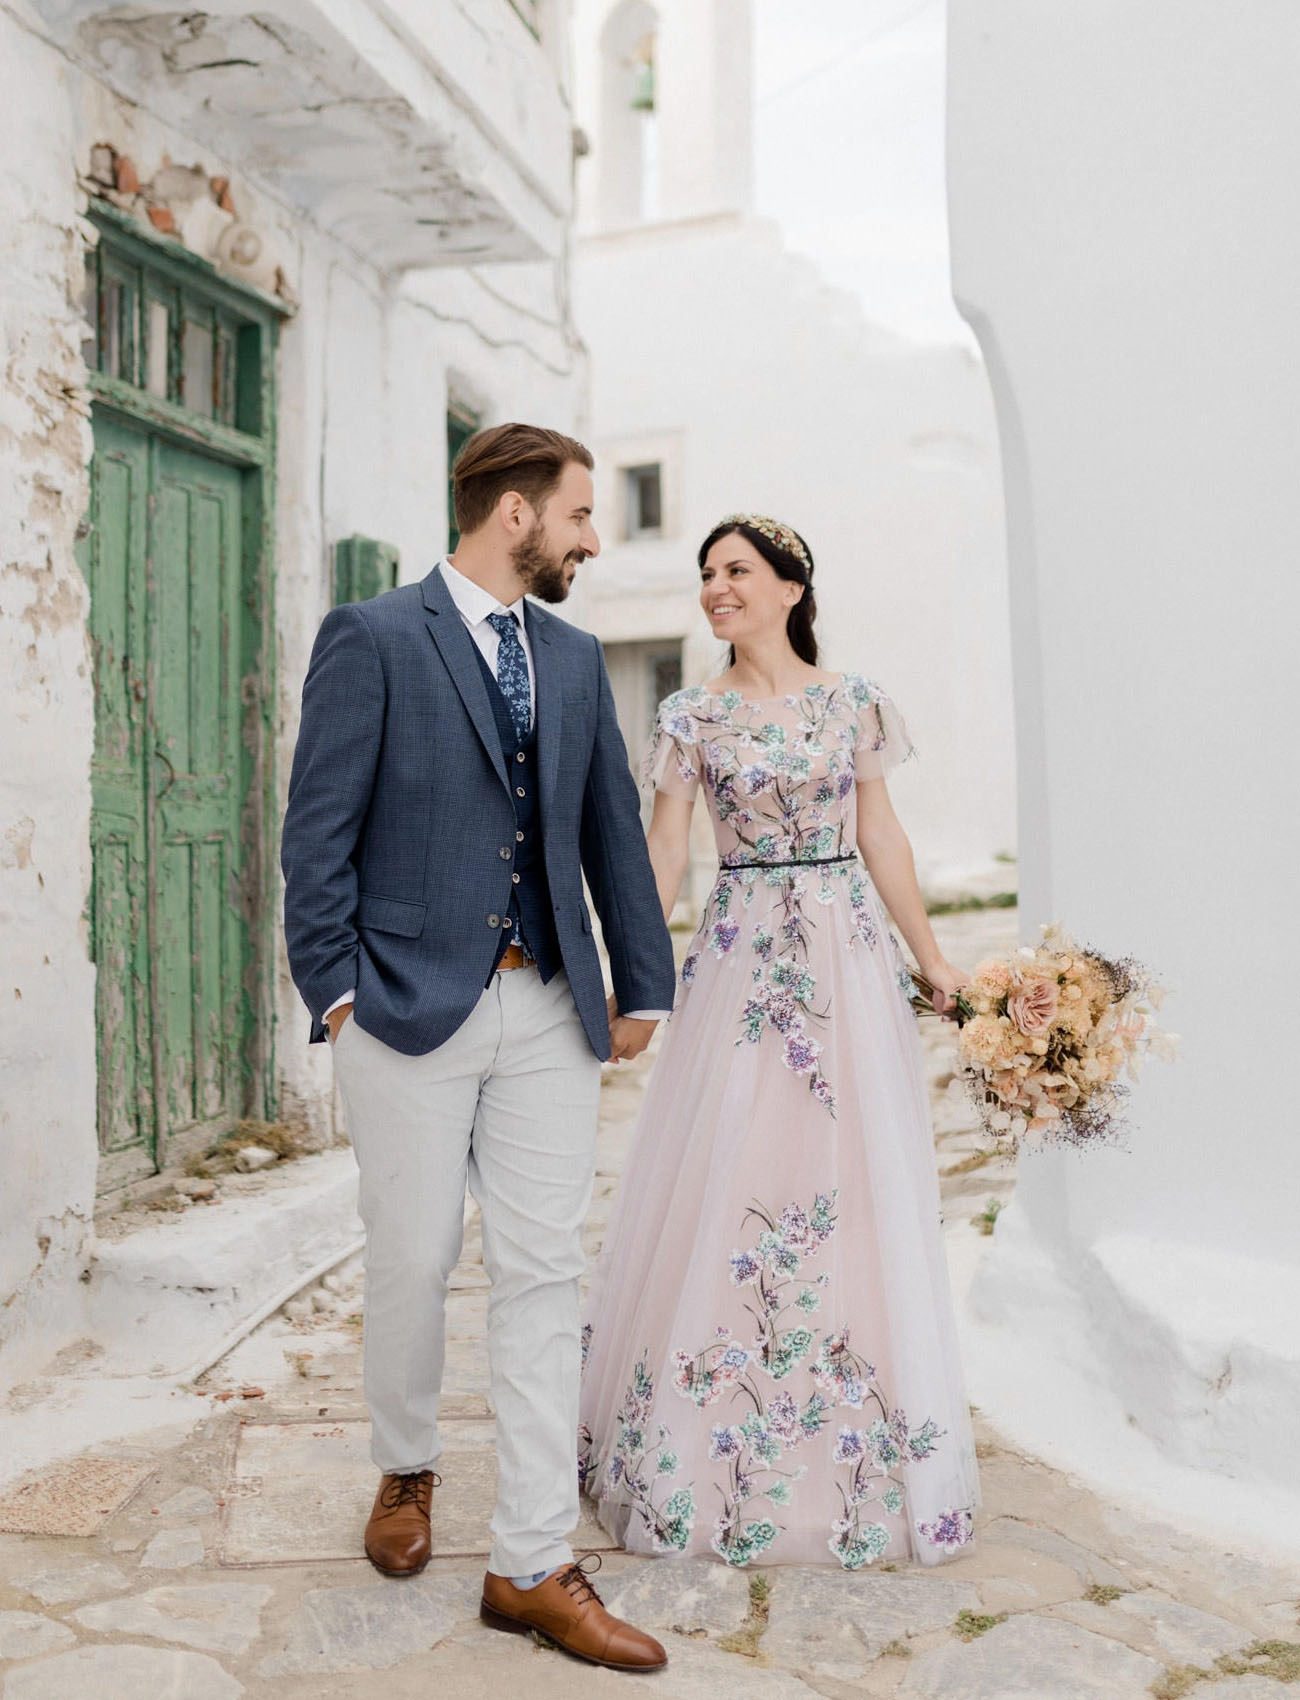 couple wandering the streets of Santorini Greece during their destination wedding